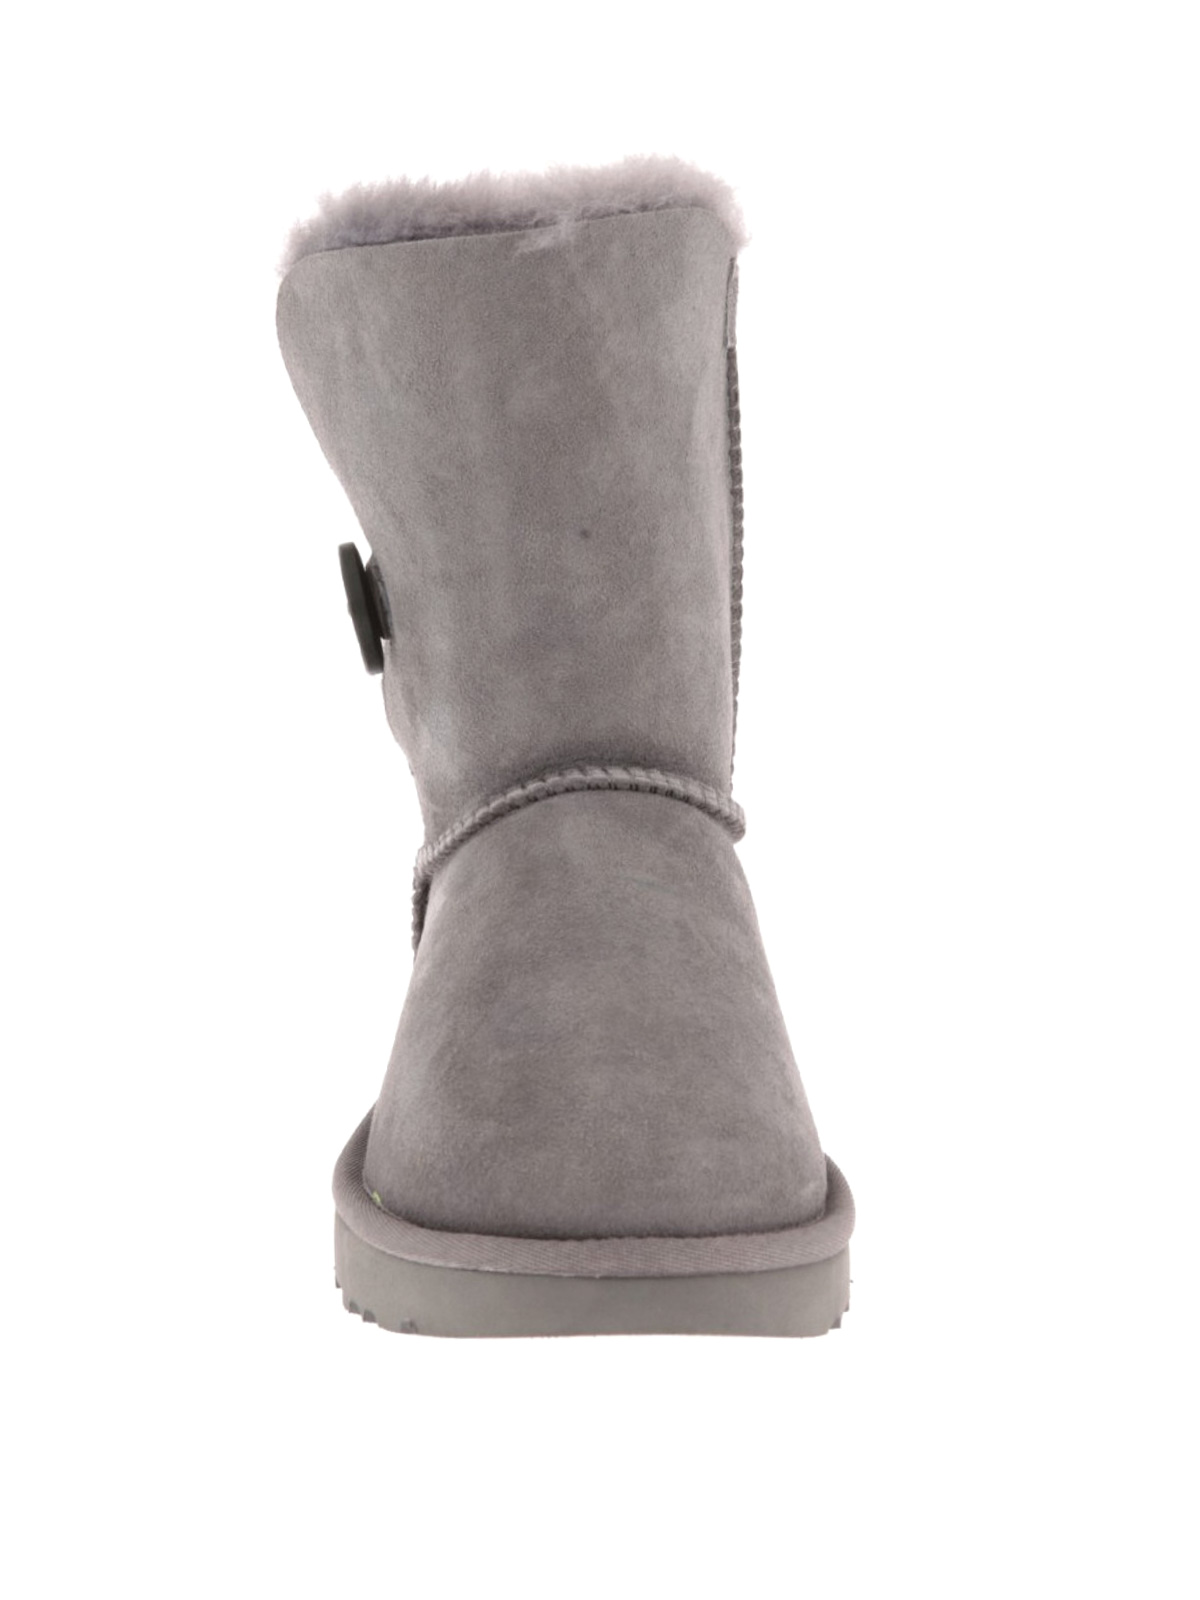 c8728ec3477 Ugg - Bailey Button II ankle booties - ankle boots - 1016226 GREY